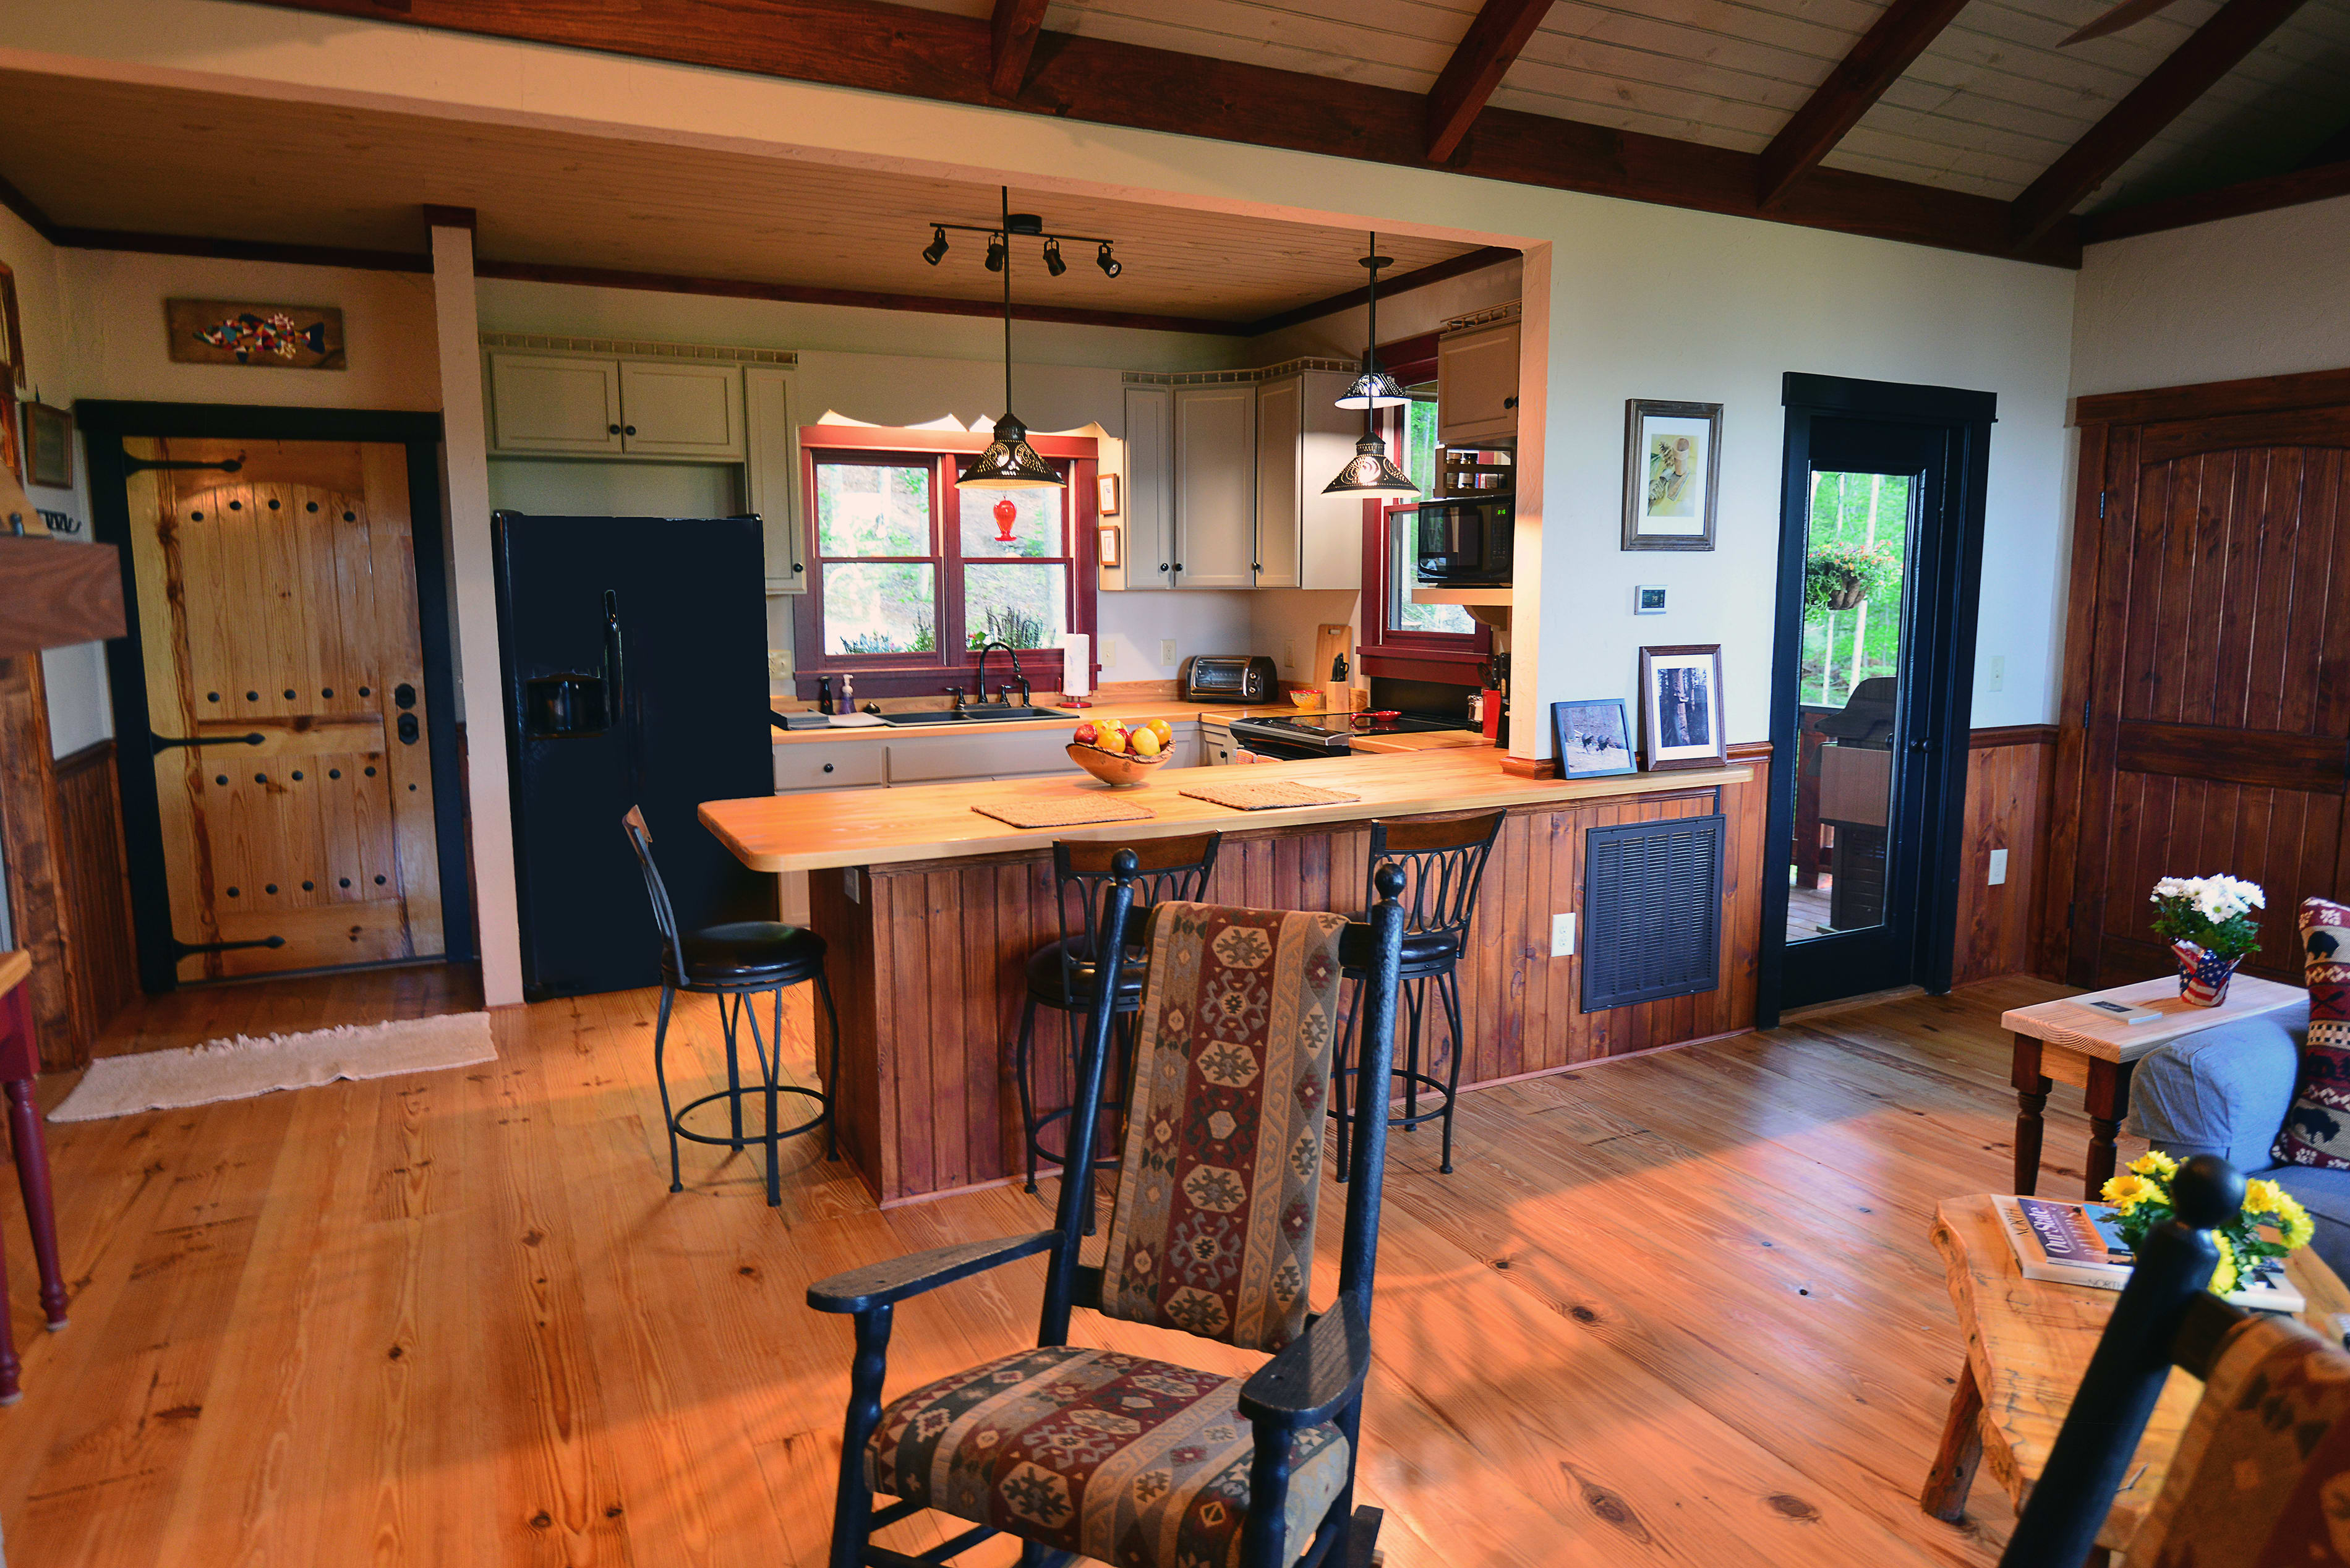 The fully equipped kitchen has everything you need to prepare romantic dinners.